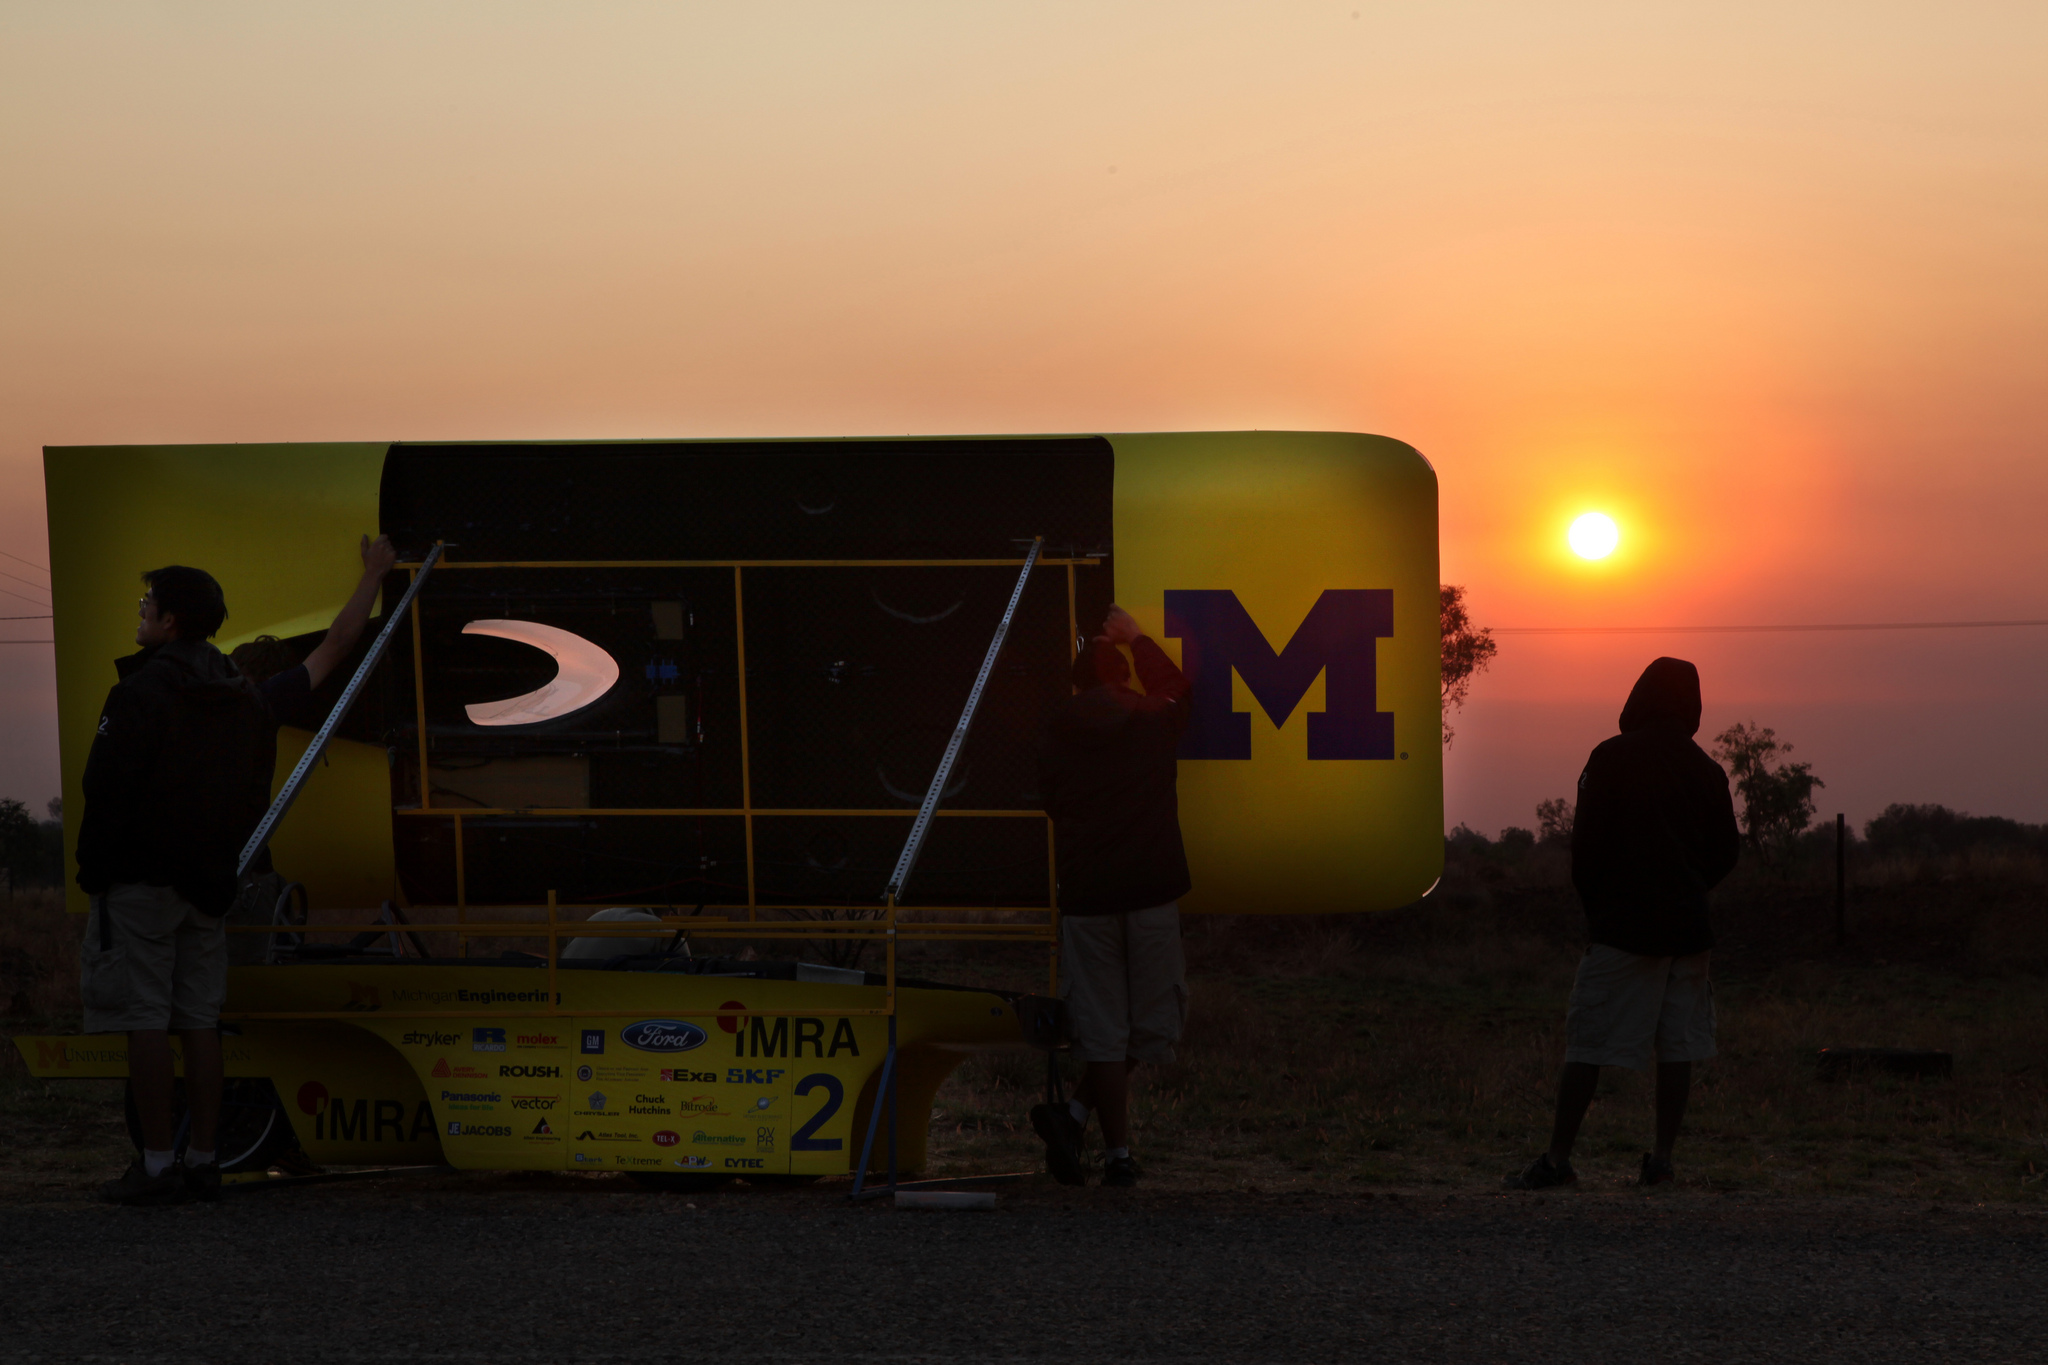 Day three of the 2011 World Solar Challenge. Image credit: Marcin Szczepanski, U-M College of Engineering